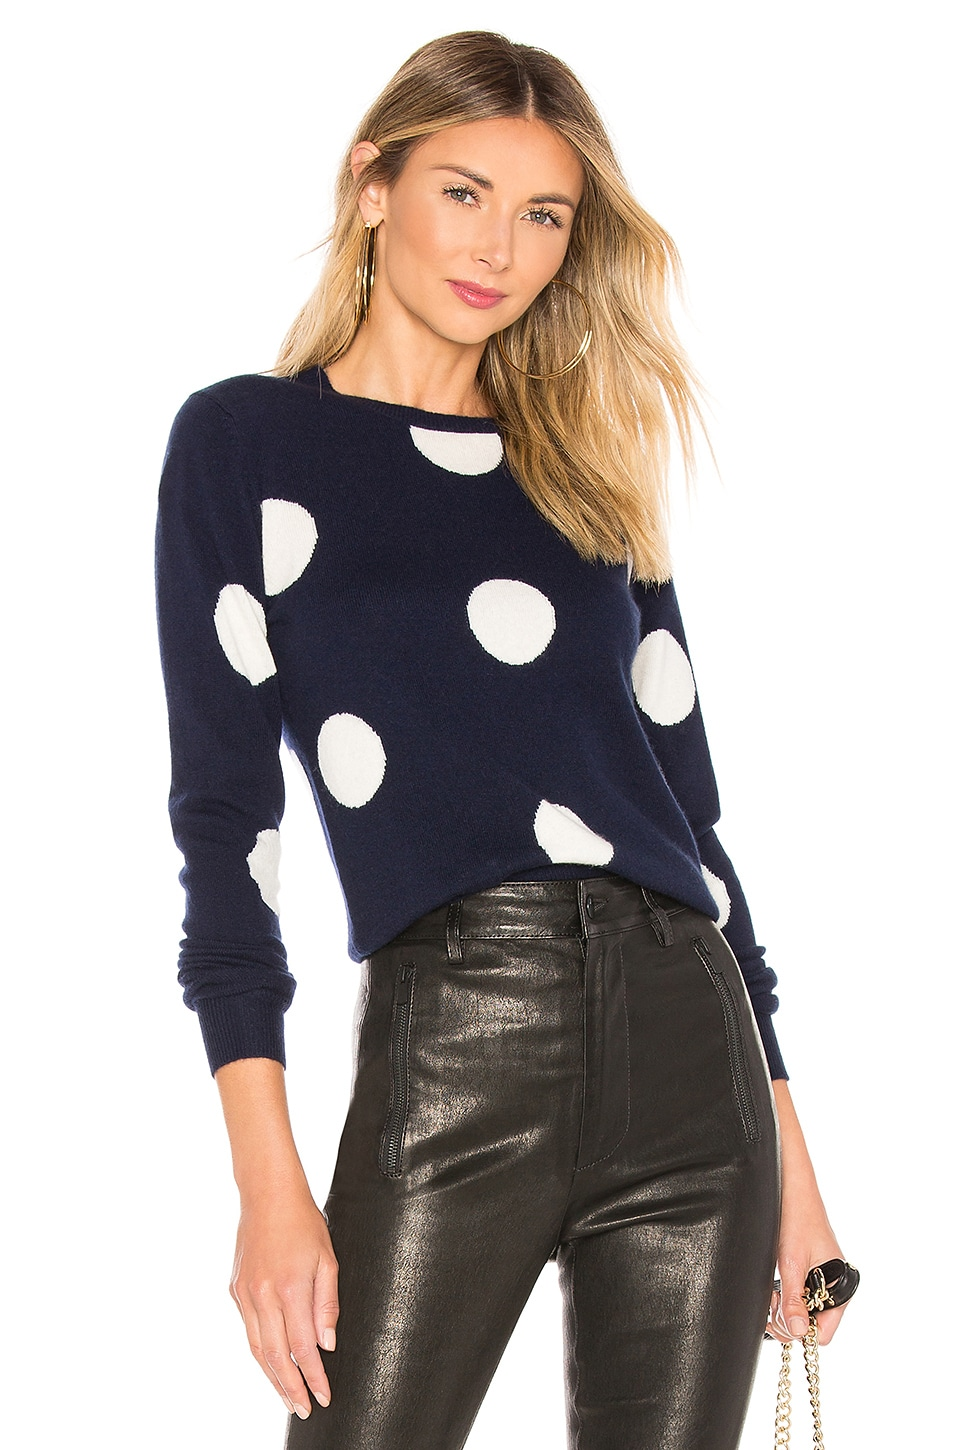 ICONS Objects of Devotion The Bardot Sweater in Navy & Linen Polka Dot